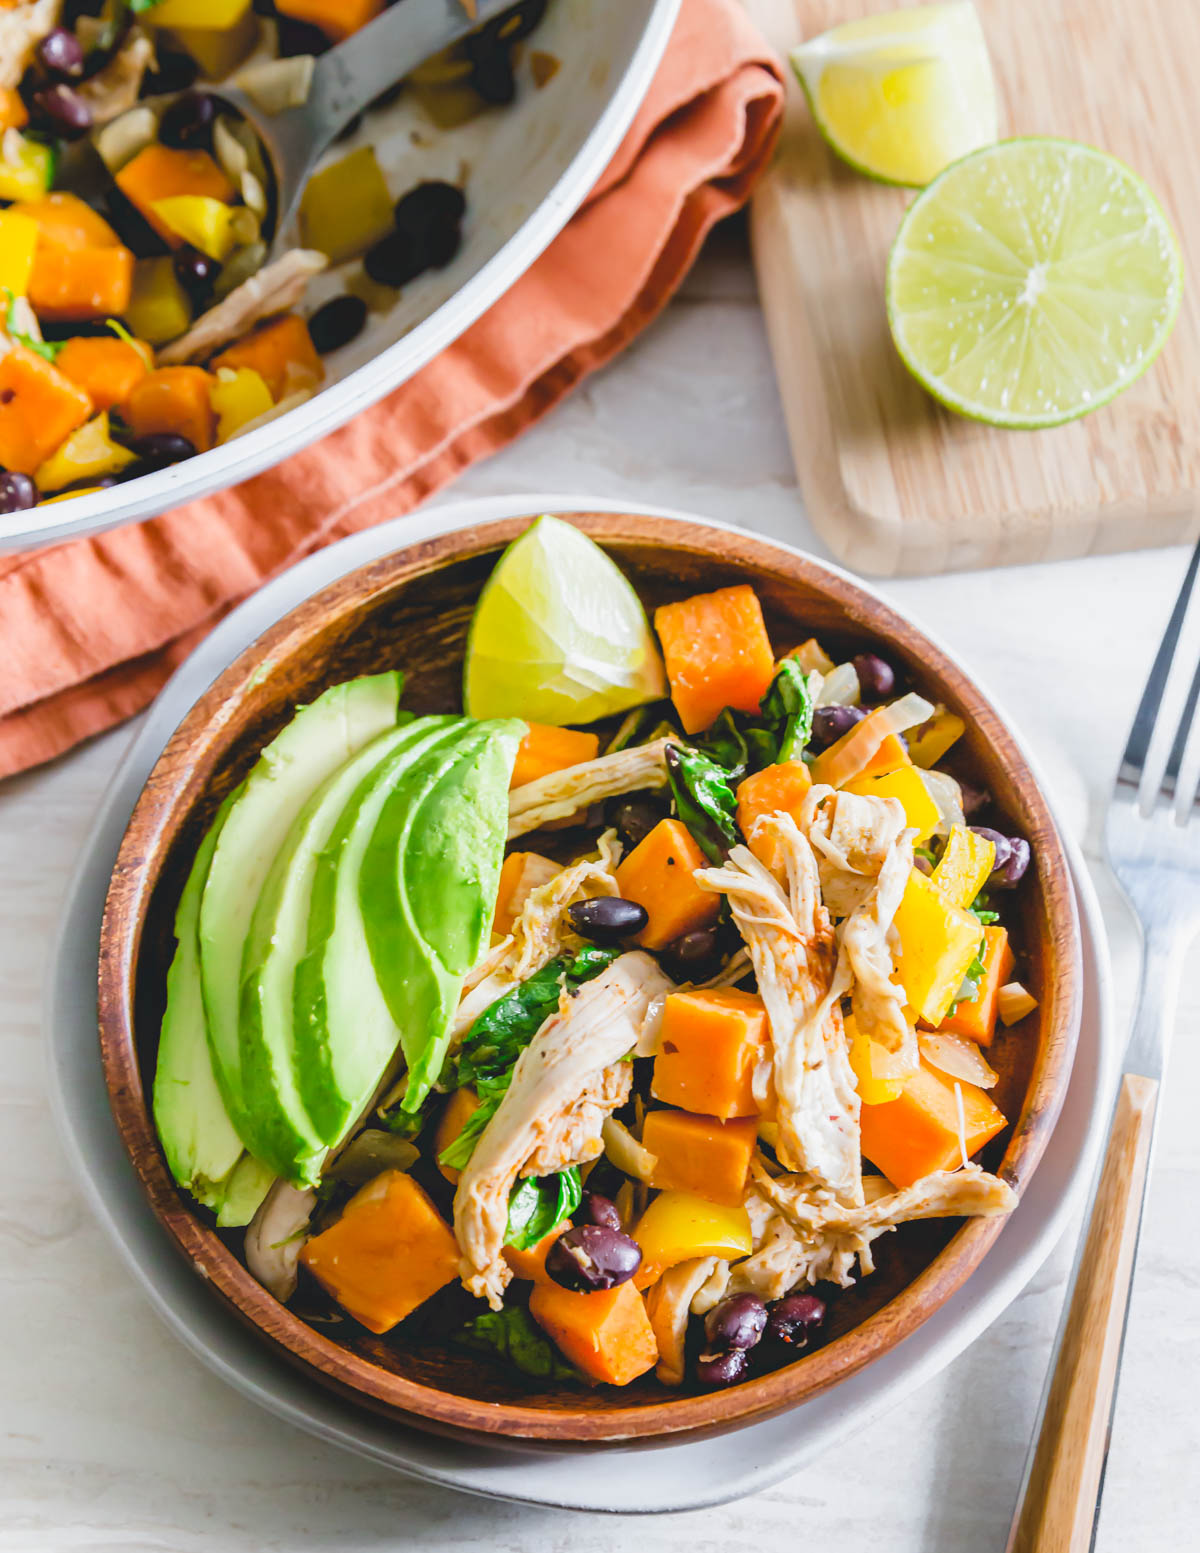 One pan turkey with sweet potatoes, black beans, peppers and onions is a great post-Thanksgiving meal to use up leftovers.